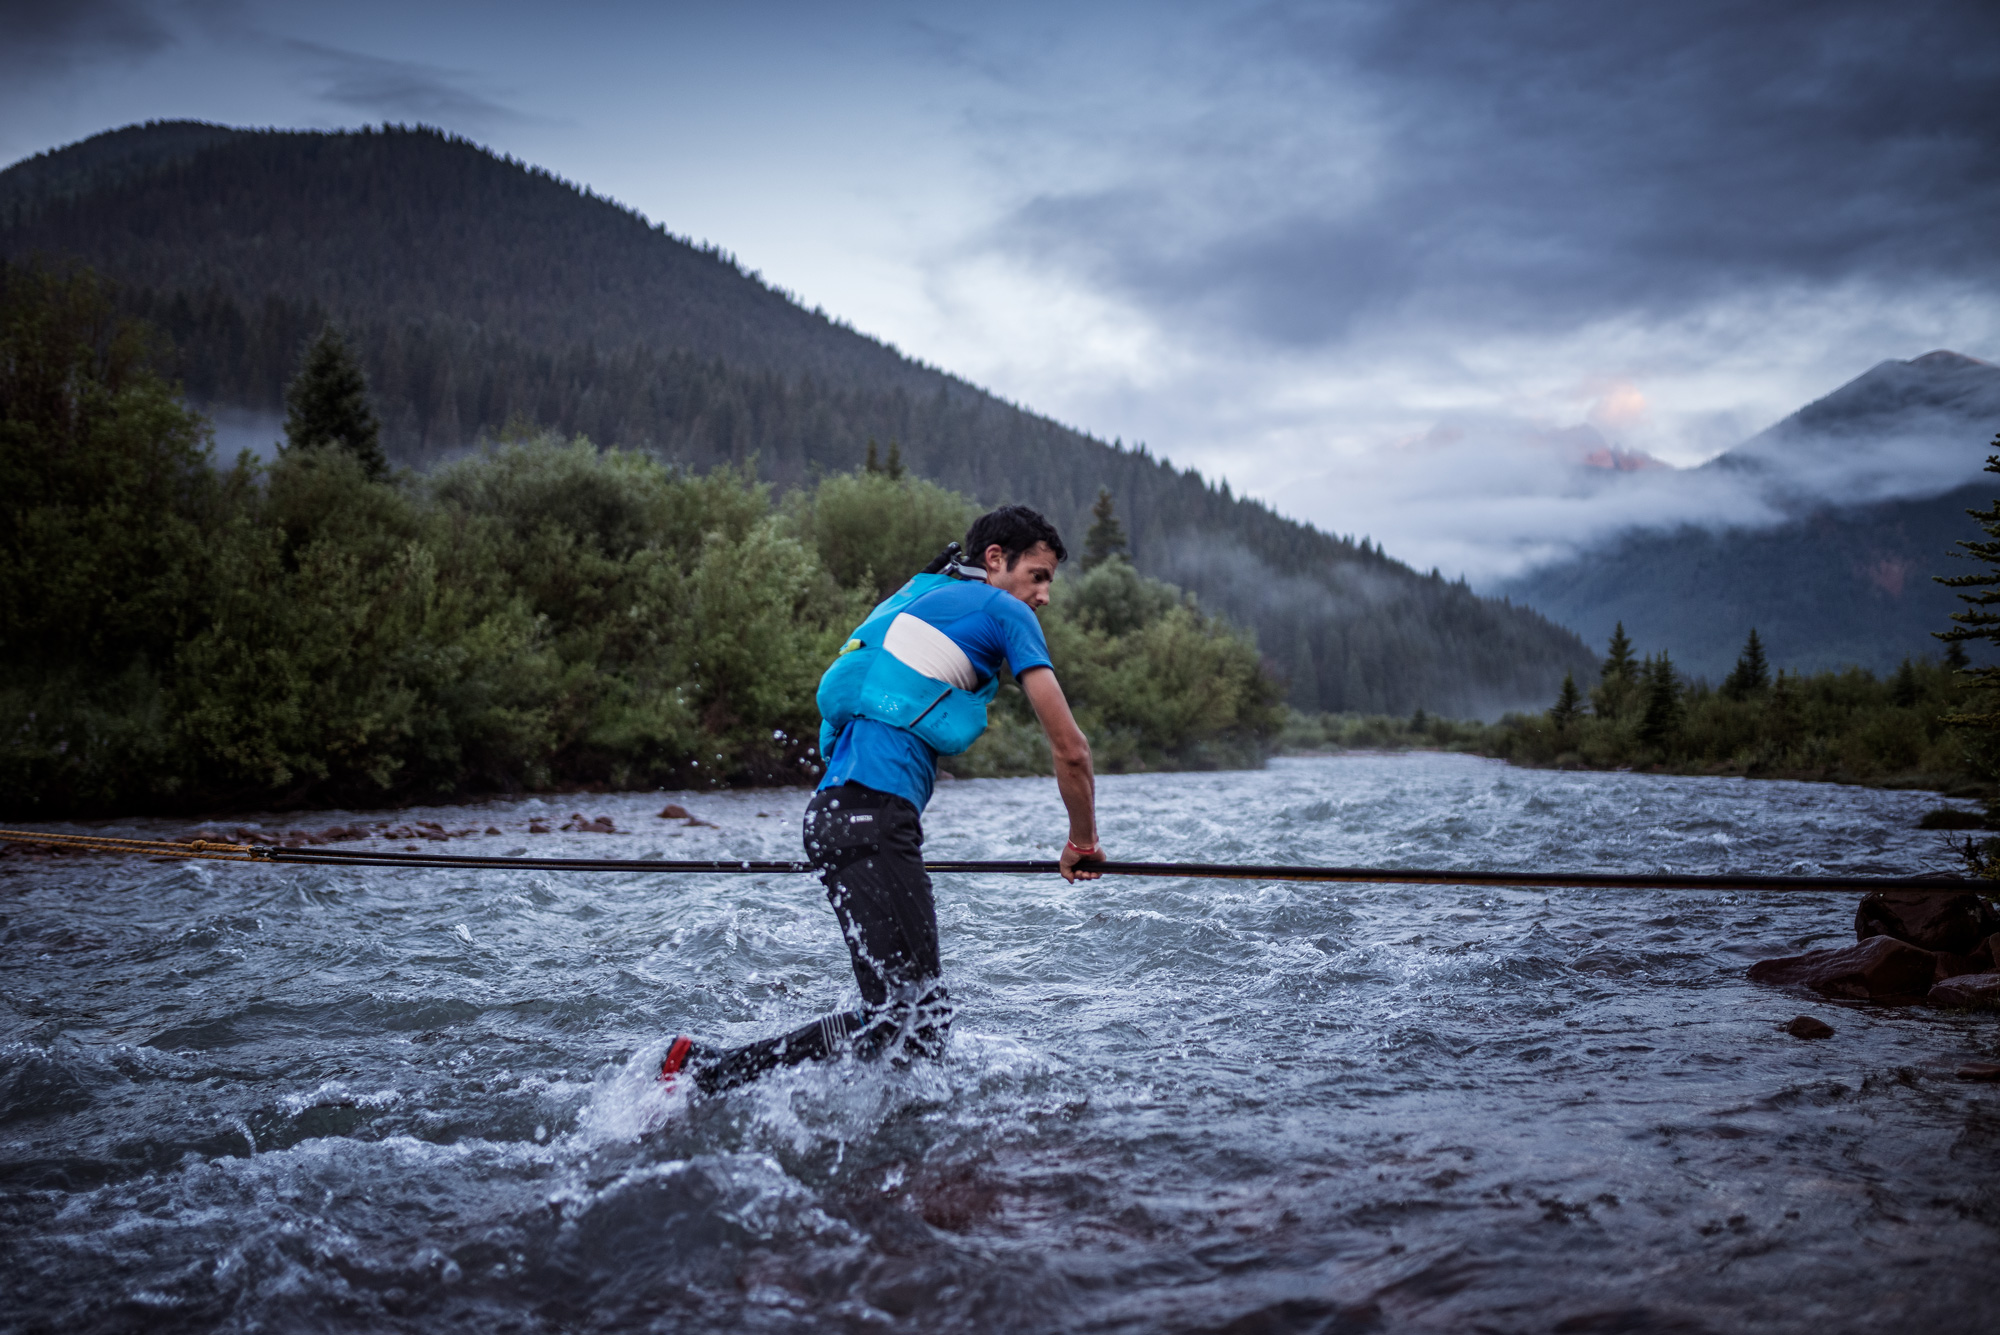 Crossing rivers with a running backpack